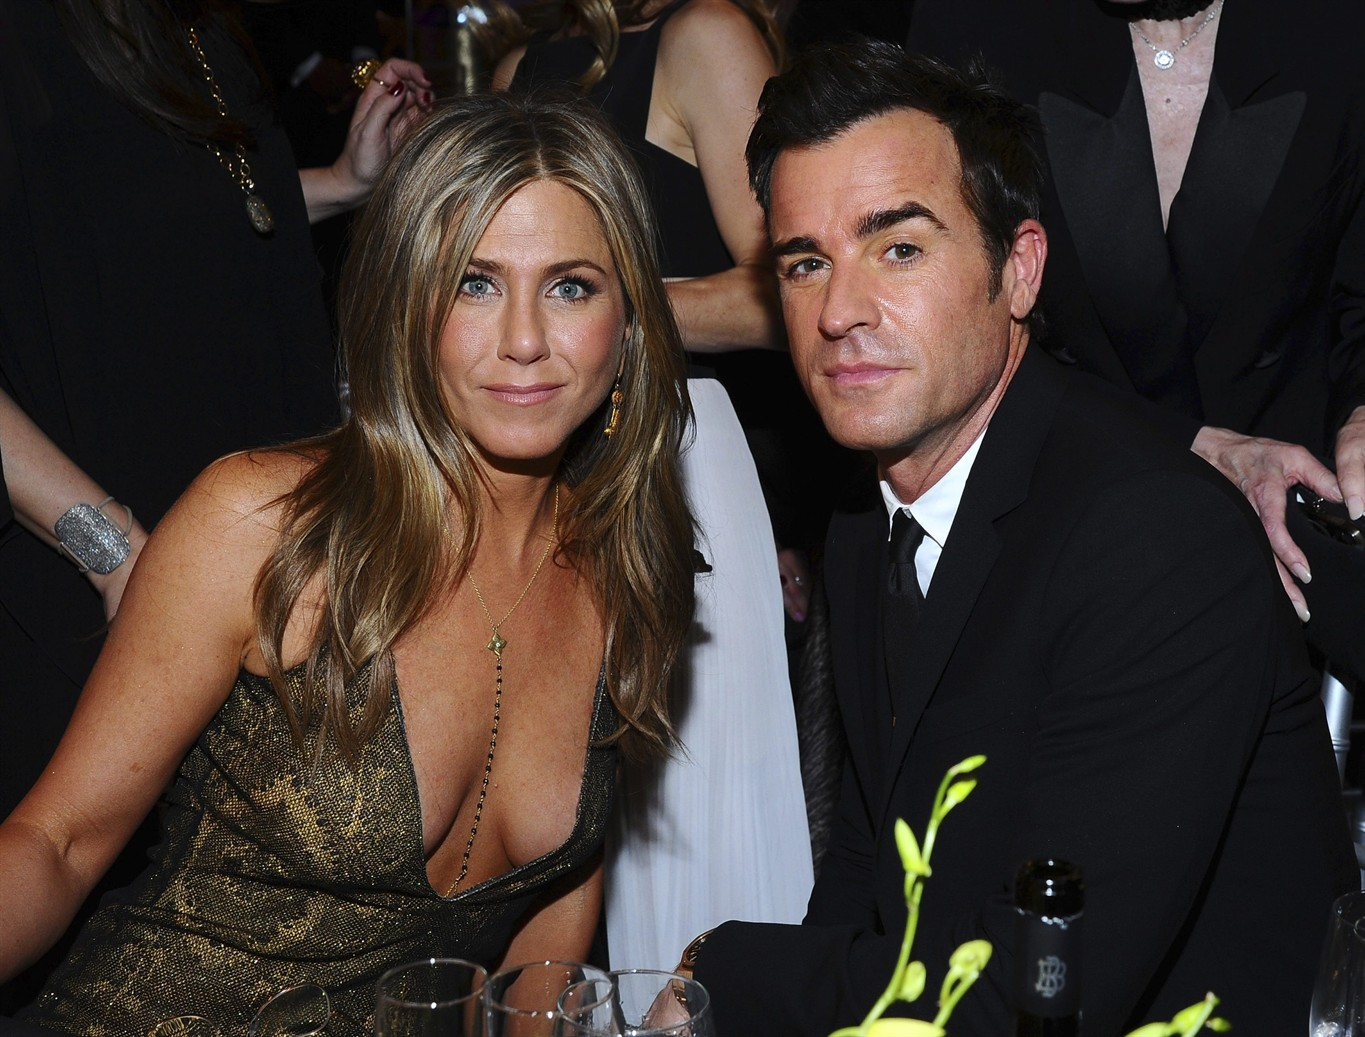 Is in relationship with Justin Theroux